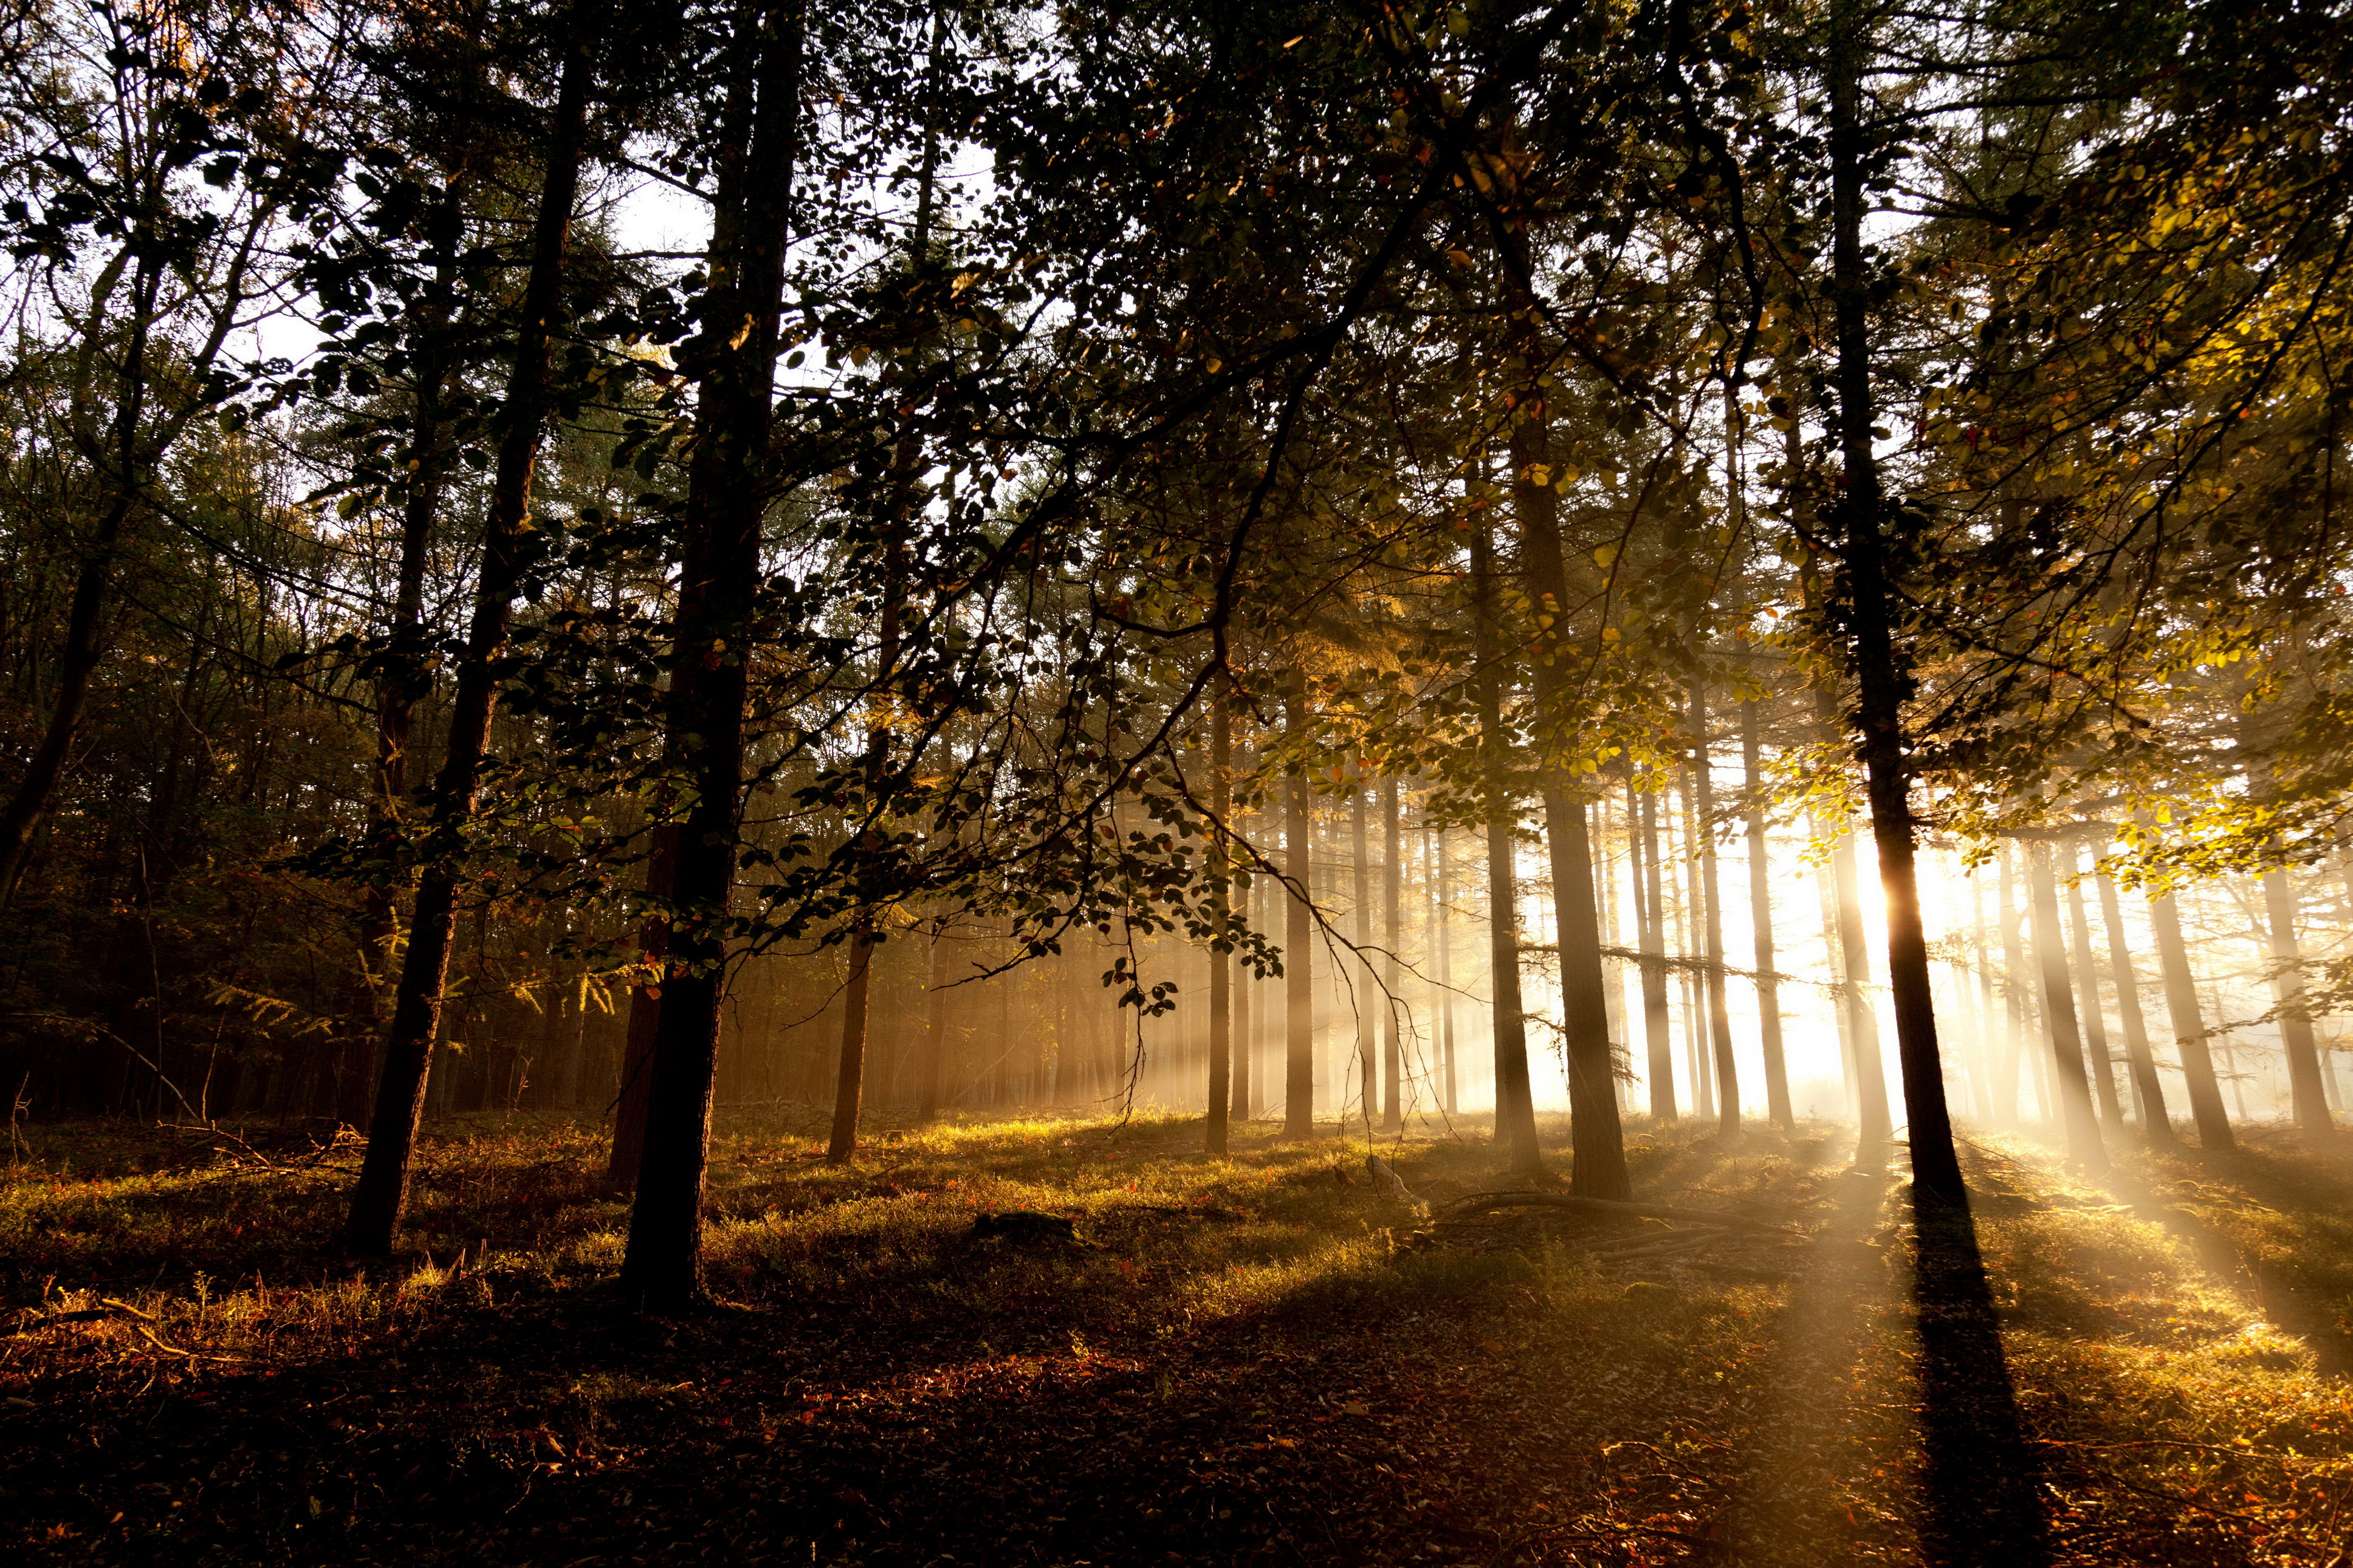 Forests Trees Rays sunlight wallpaper | 3872x2581 | 100584 ...